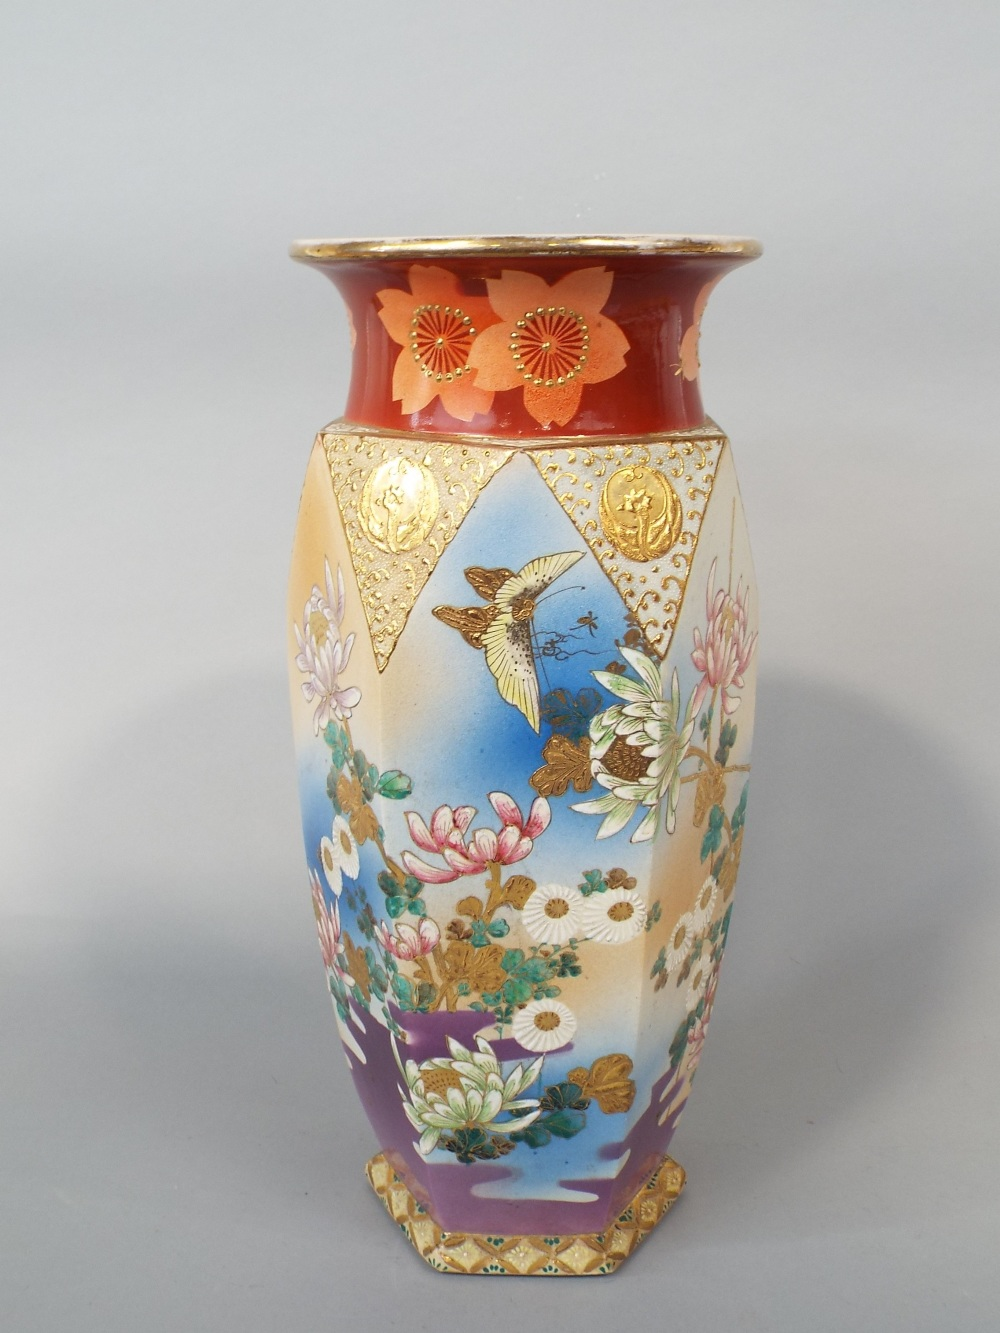 Lot 51 - A large early 20th century satsuma vase of hexagonal form with painted and gilded floral detail,